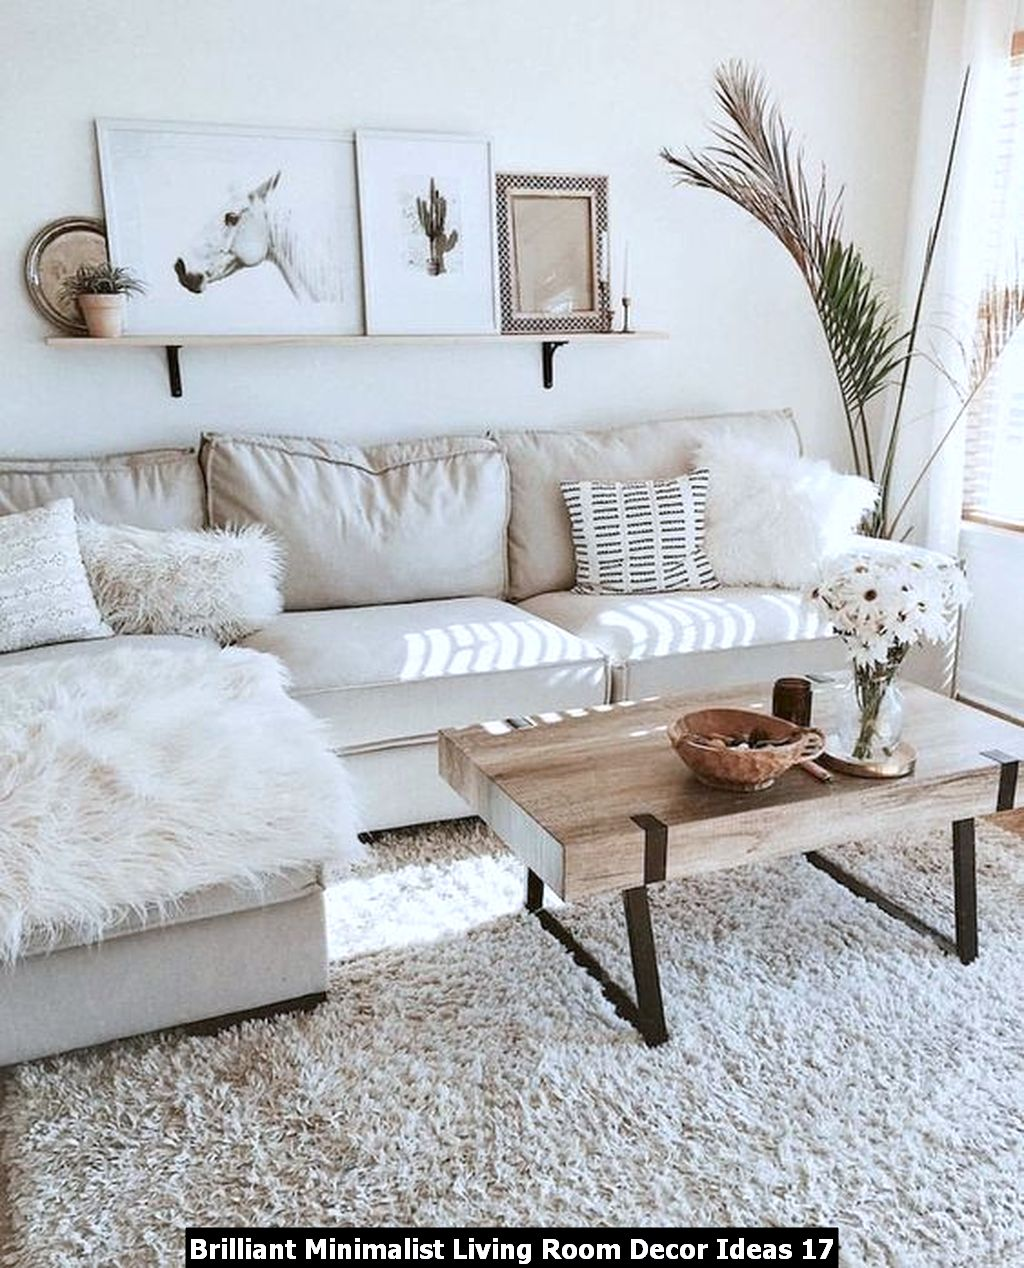 Brilliant Minimalist Living Room Decor Ideas 17